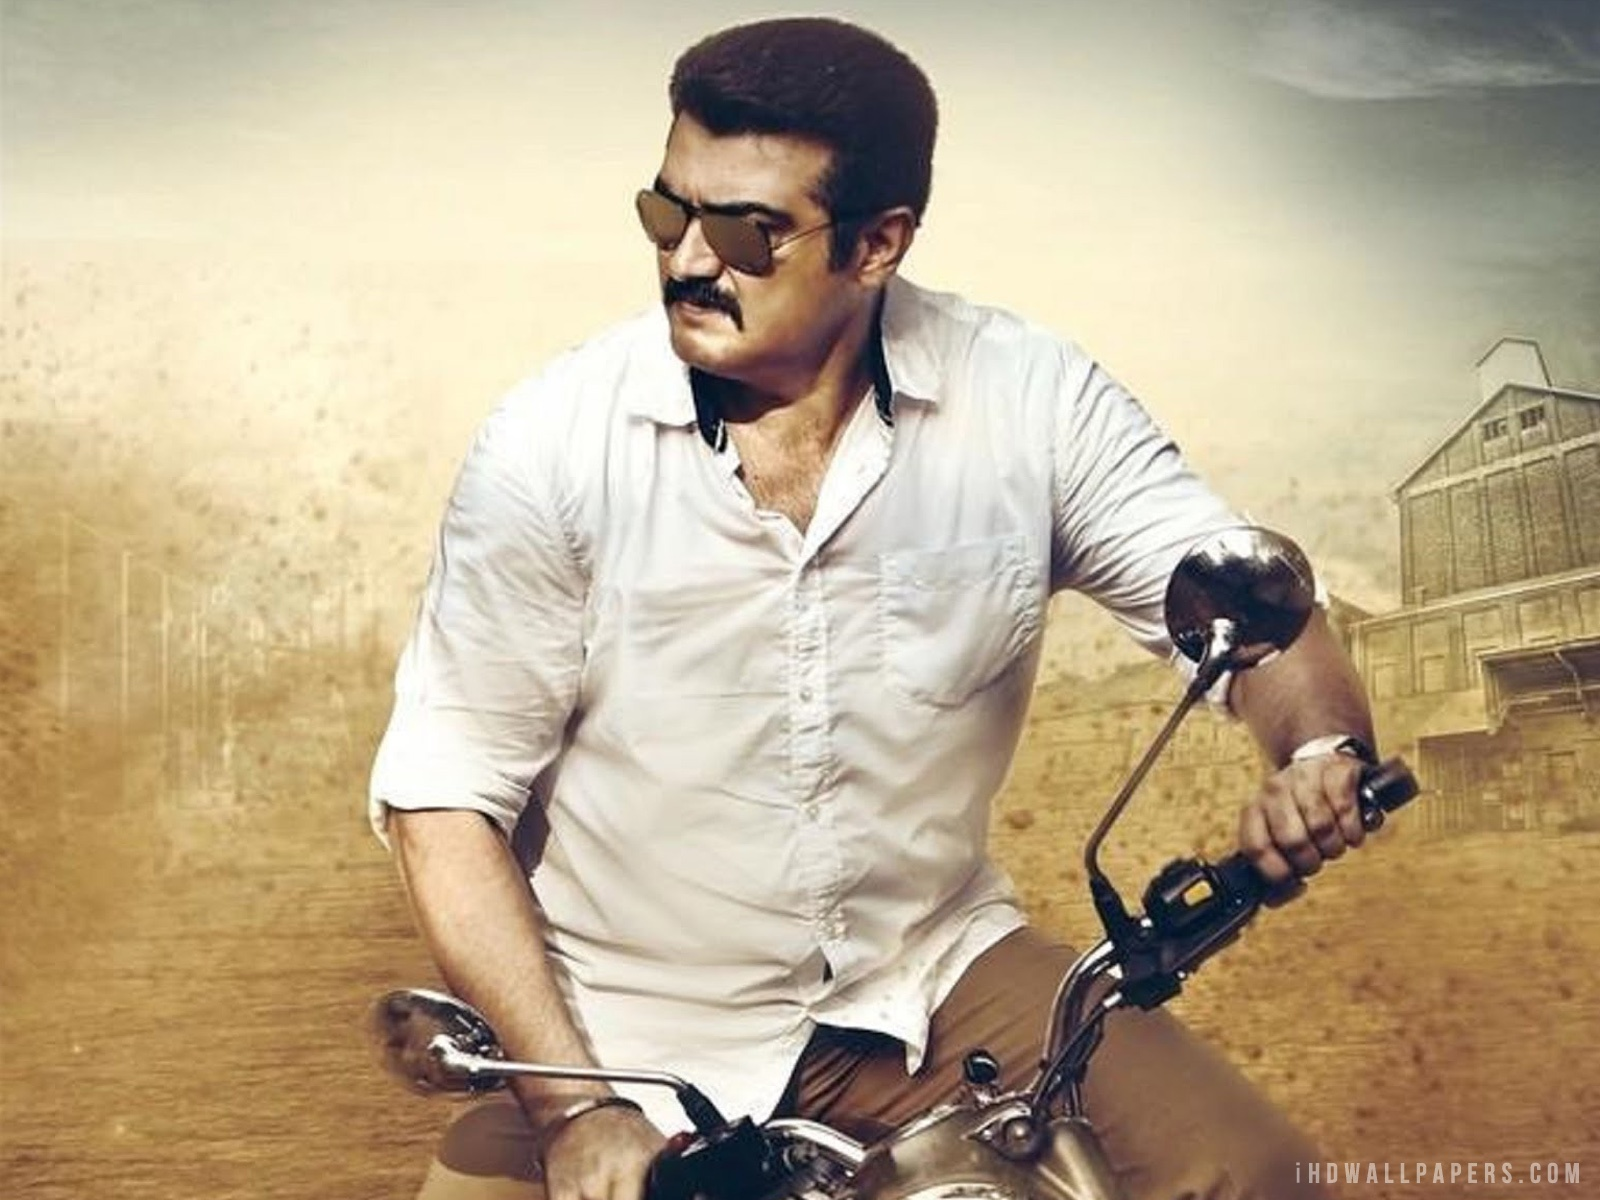 Ajith Kumar Images, Photos, Latest HD Wallpapers Free Download